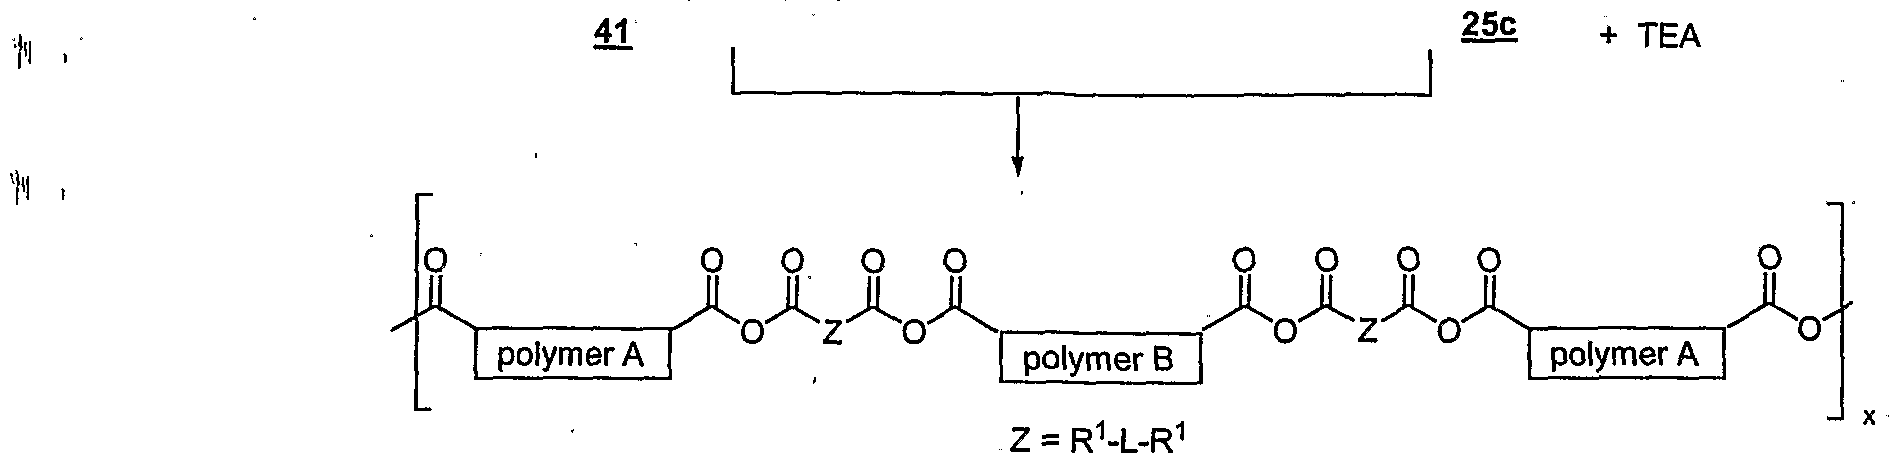 Wo2005042600a2 High Molecular Weight Polymers Devices And Method Plug Wiring Diagram 3 Wire Furthermore Stealth C Er Van On Generator Figure Imgf000098 0002